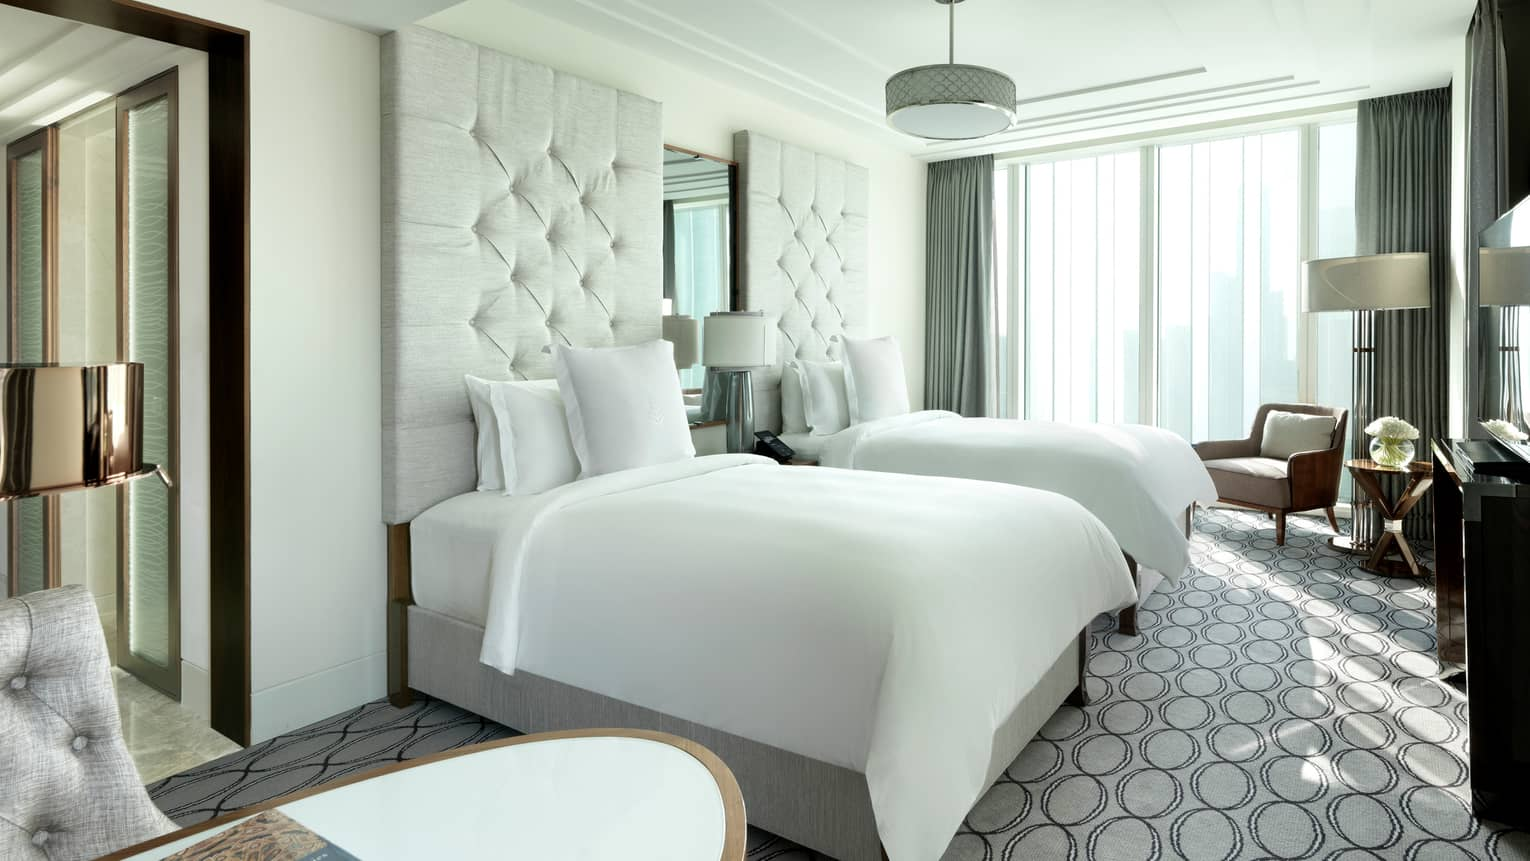 Premier Room double beds with white linens, headboards, grey patterned carpet